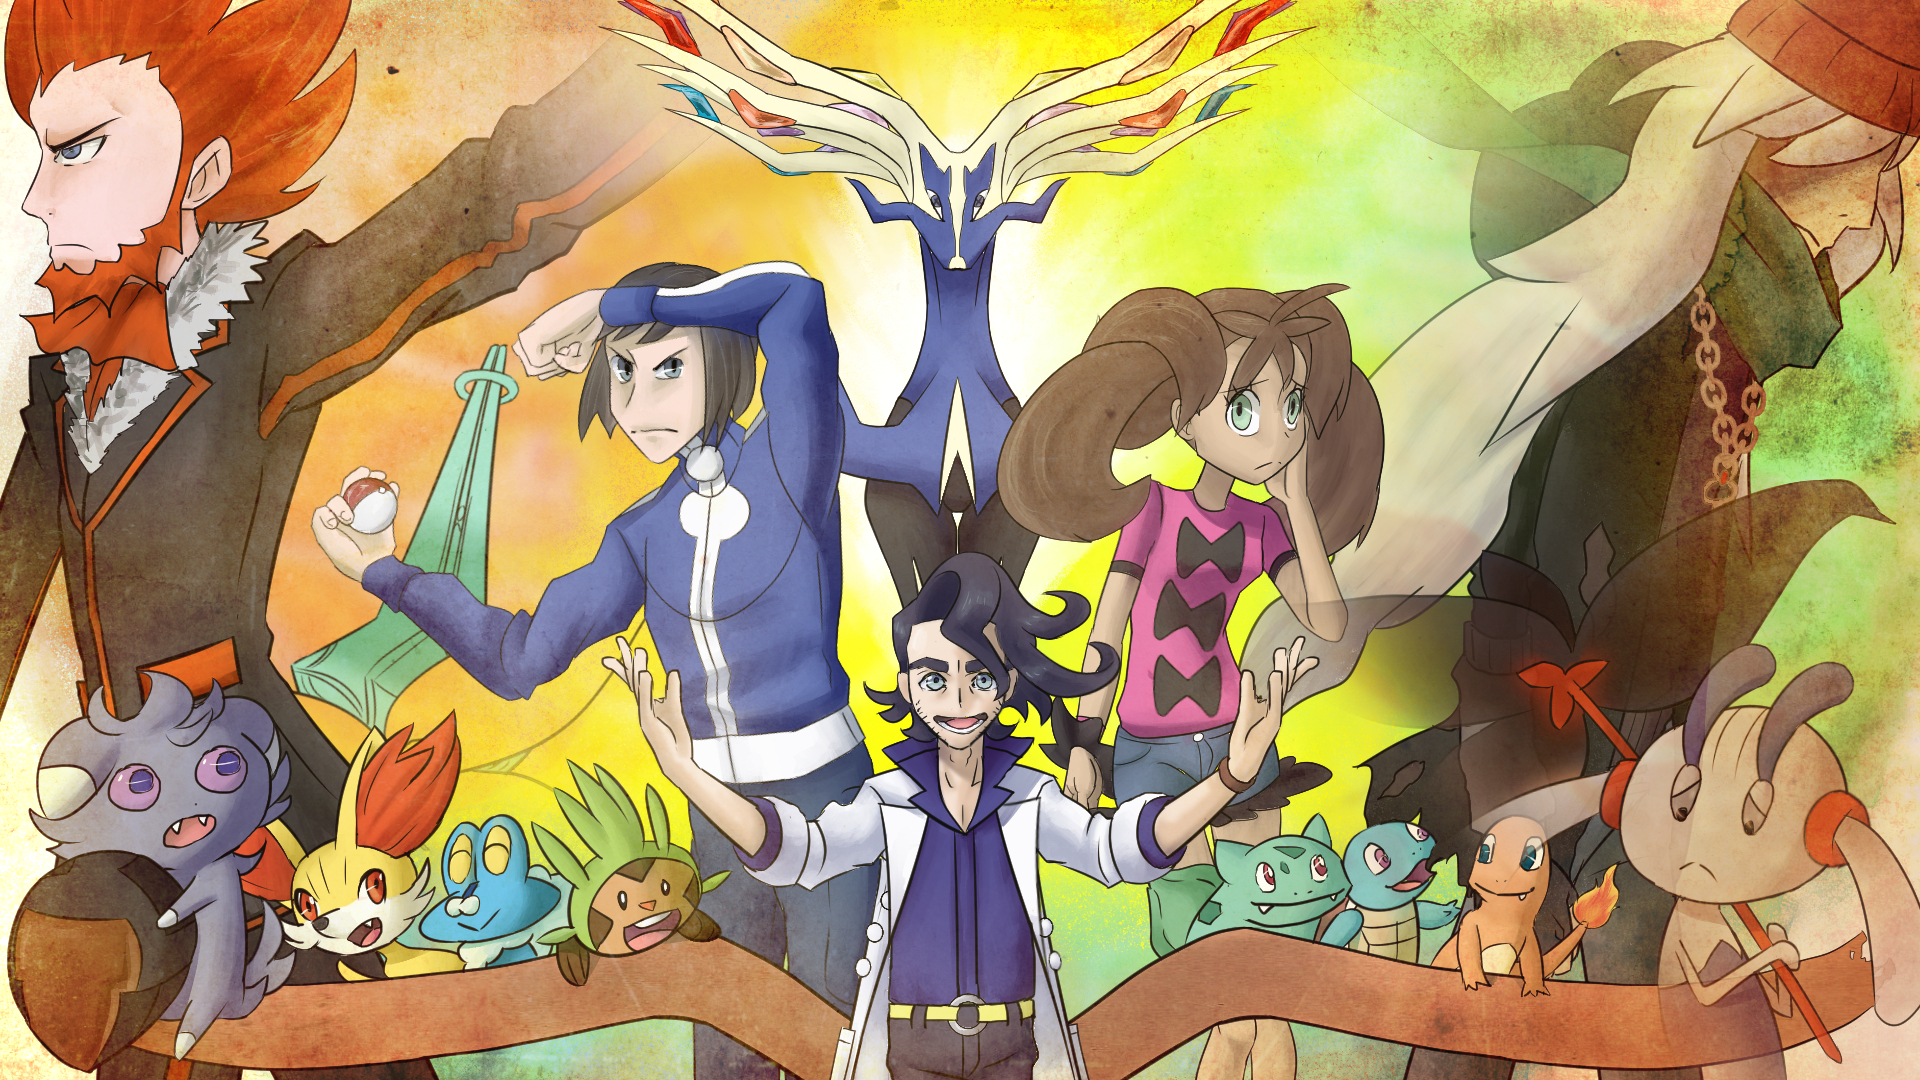 False Beauty of Kalos image exemplified by Lysandre, Professor Sycamore AZ, as well as the game's side characters